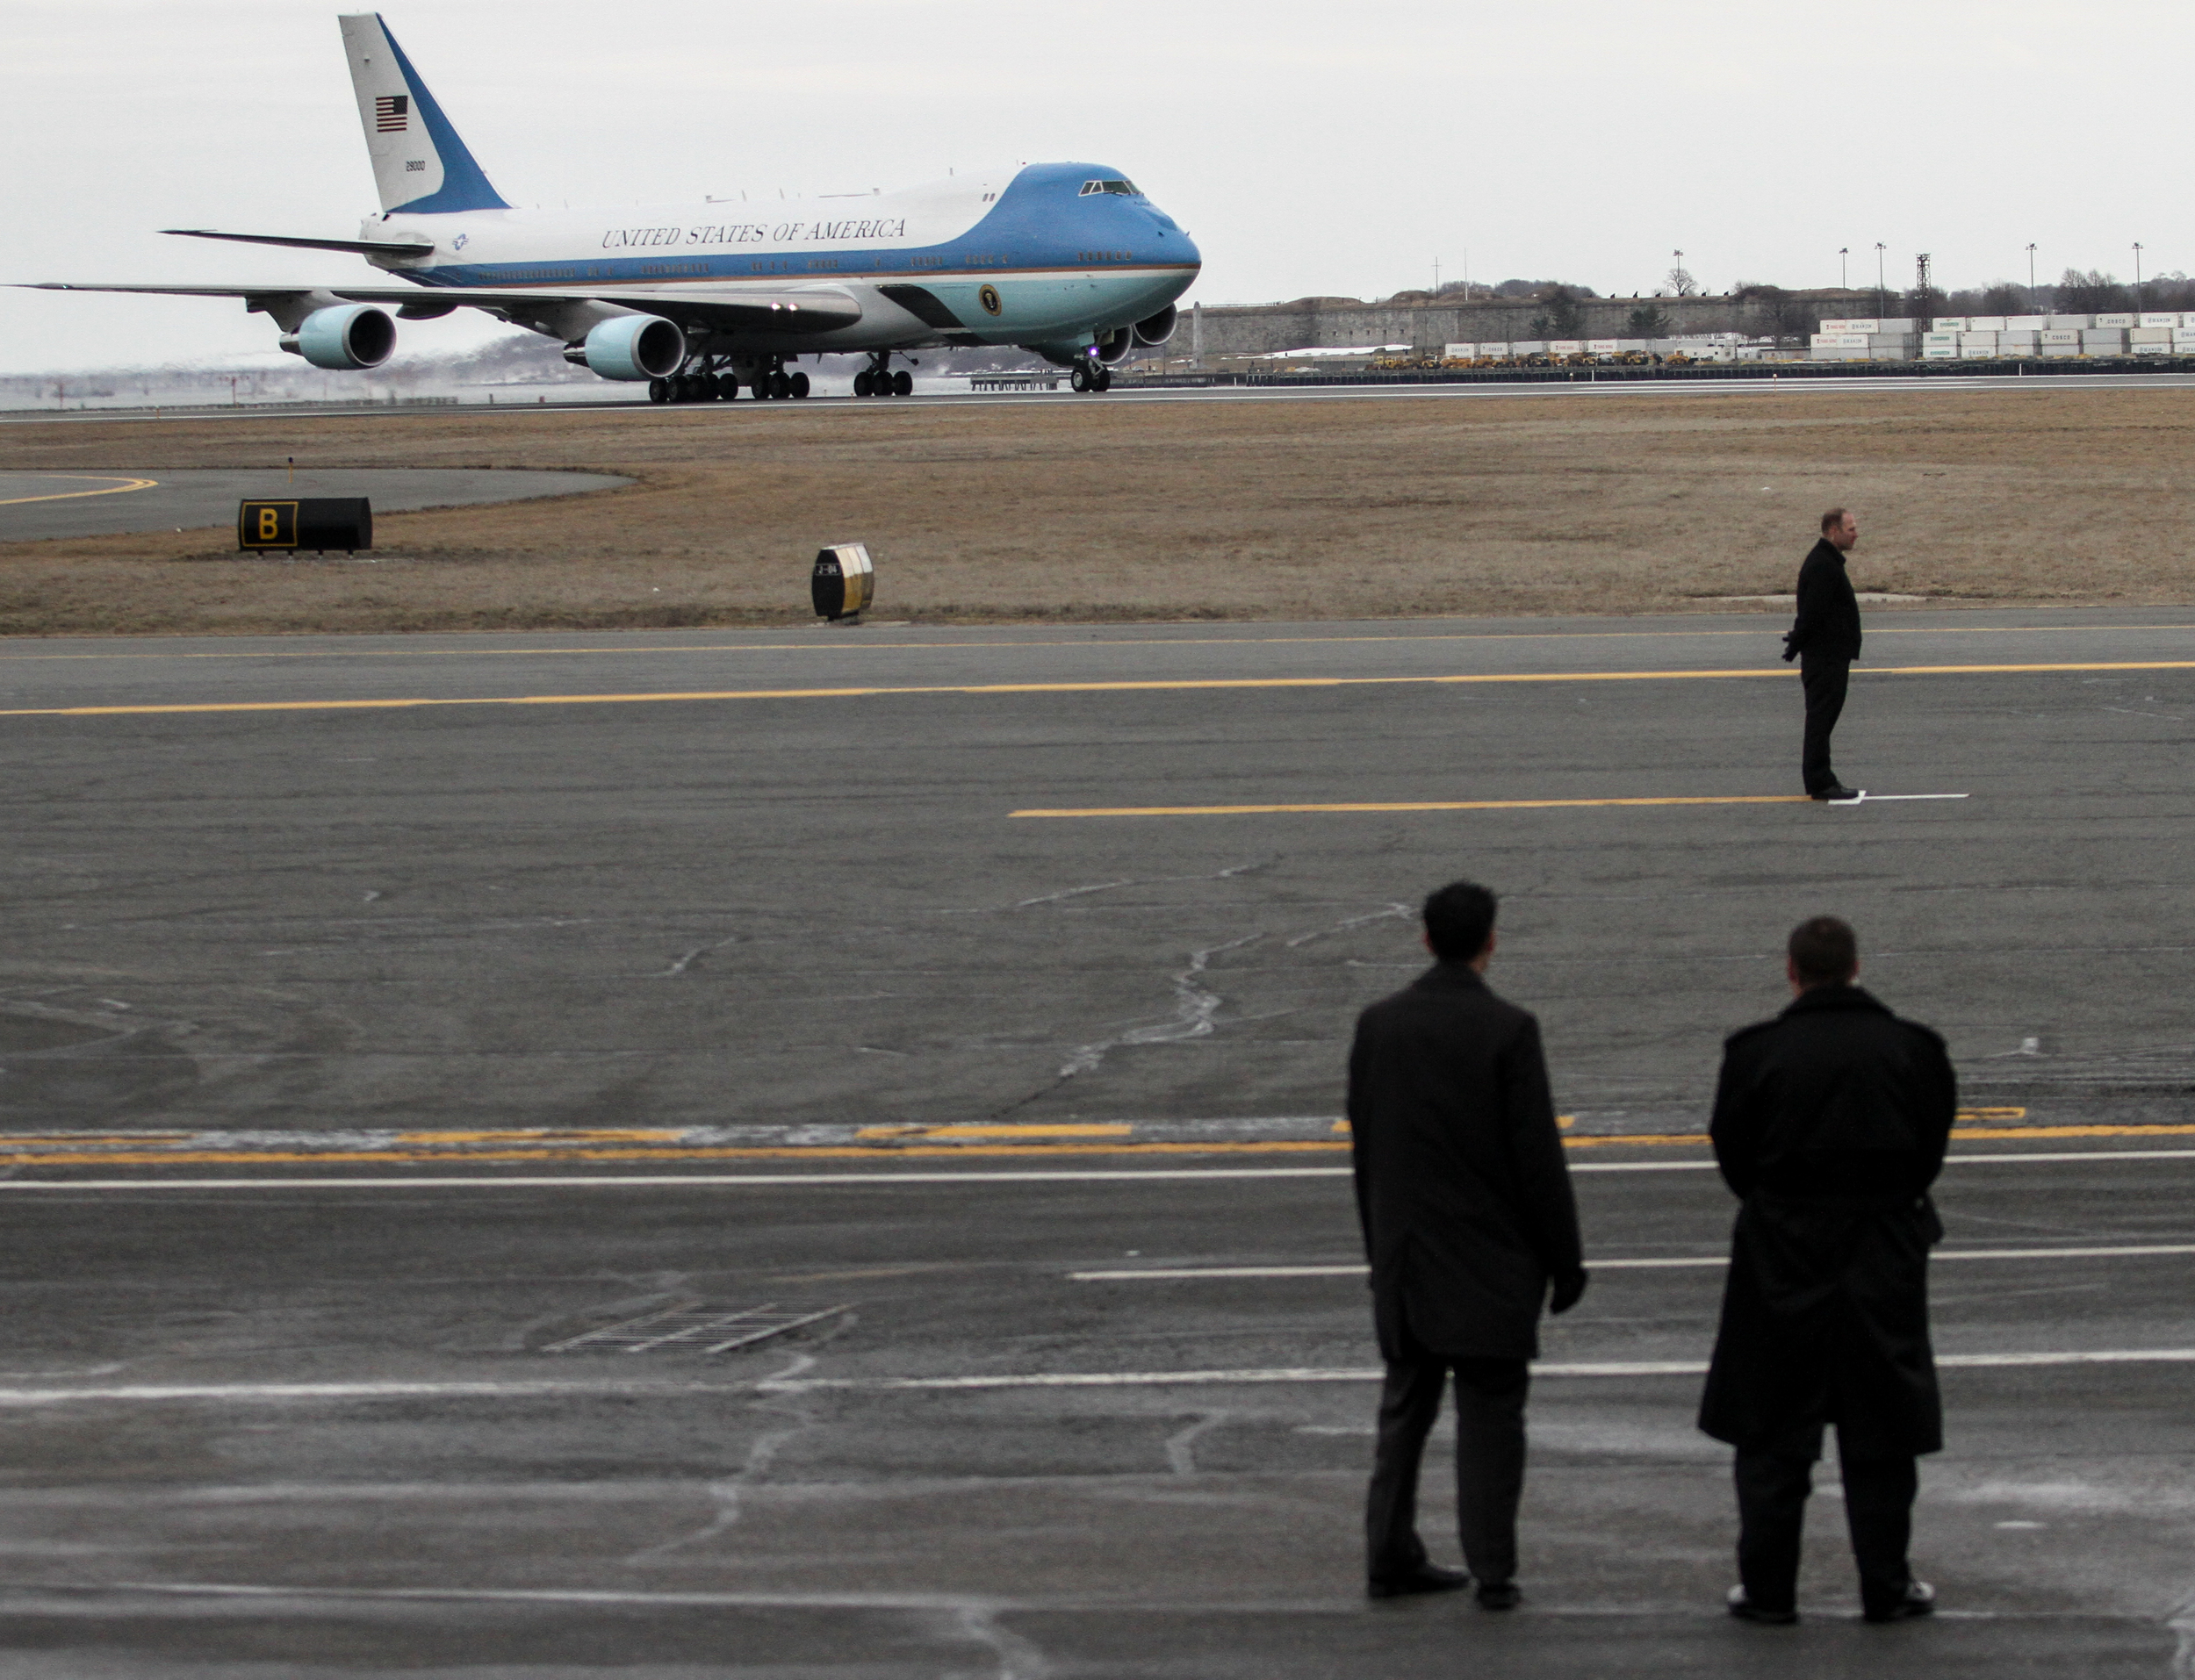 Air Force One arrives at Logan International Airport in Boston, Mass. March30, 2015.